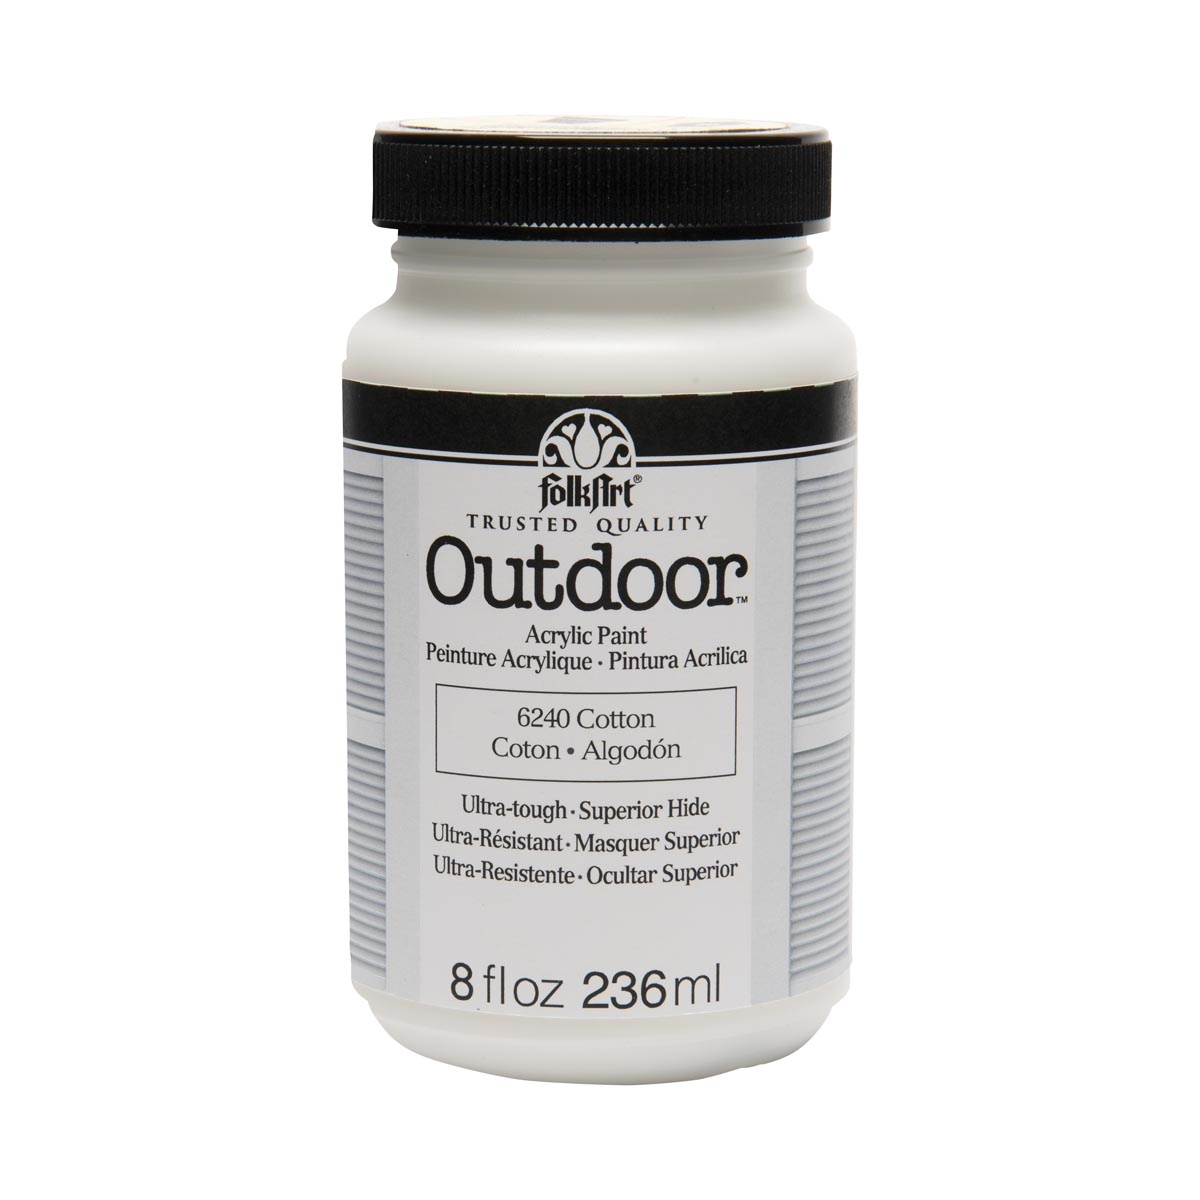 FolkArt ® Outdoor™ Acrylic Colors - Cotton, 8 oz.